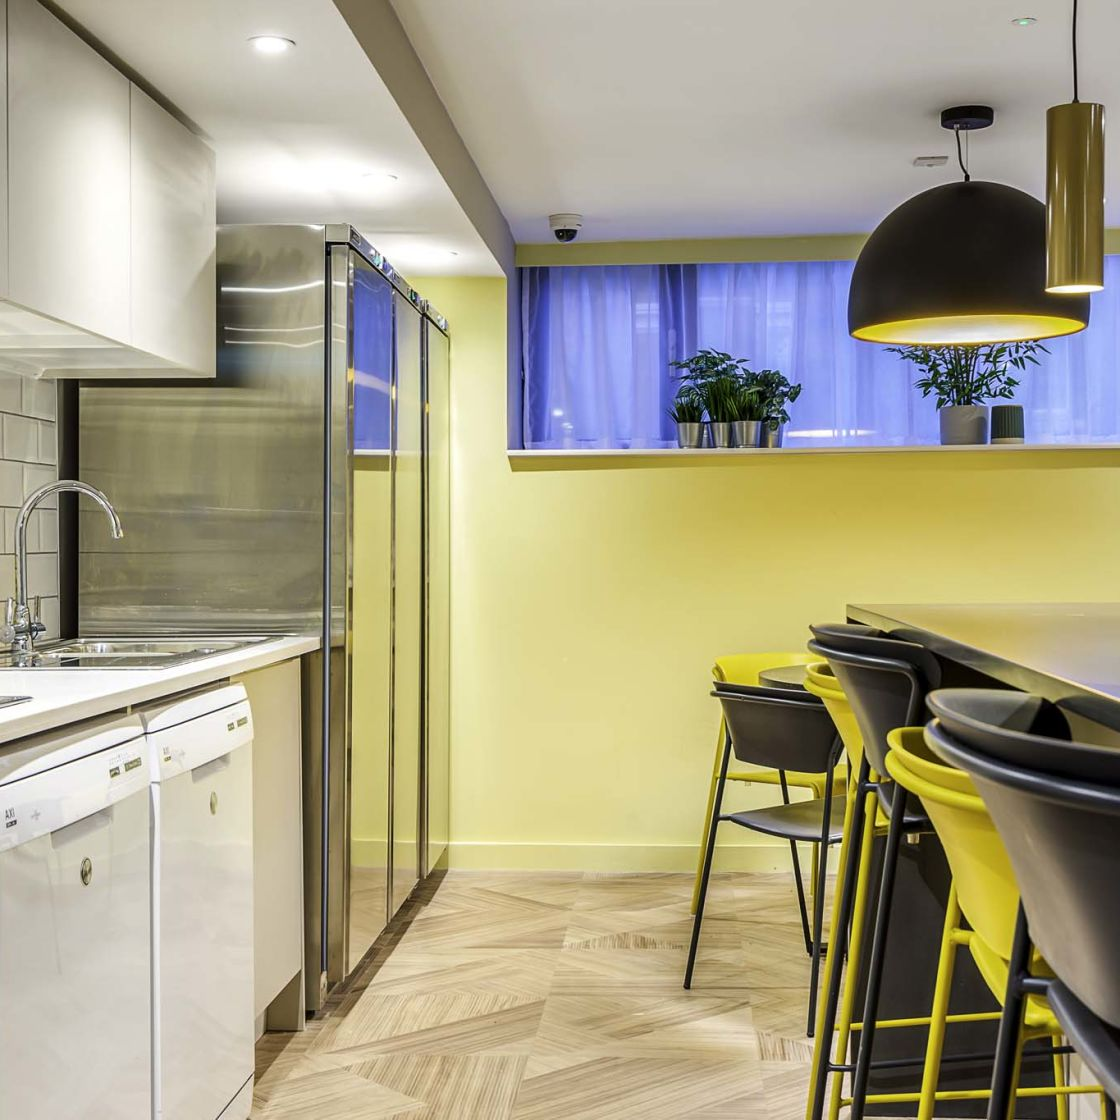 Mega kitchen at IconInc Gravity, student accommodation in Lincoln